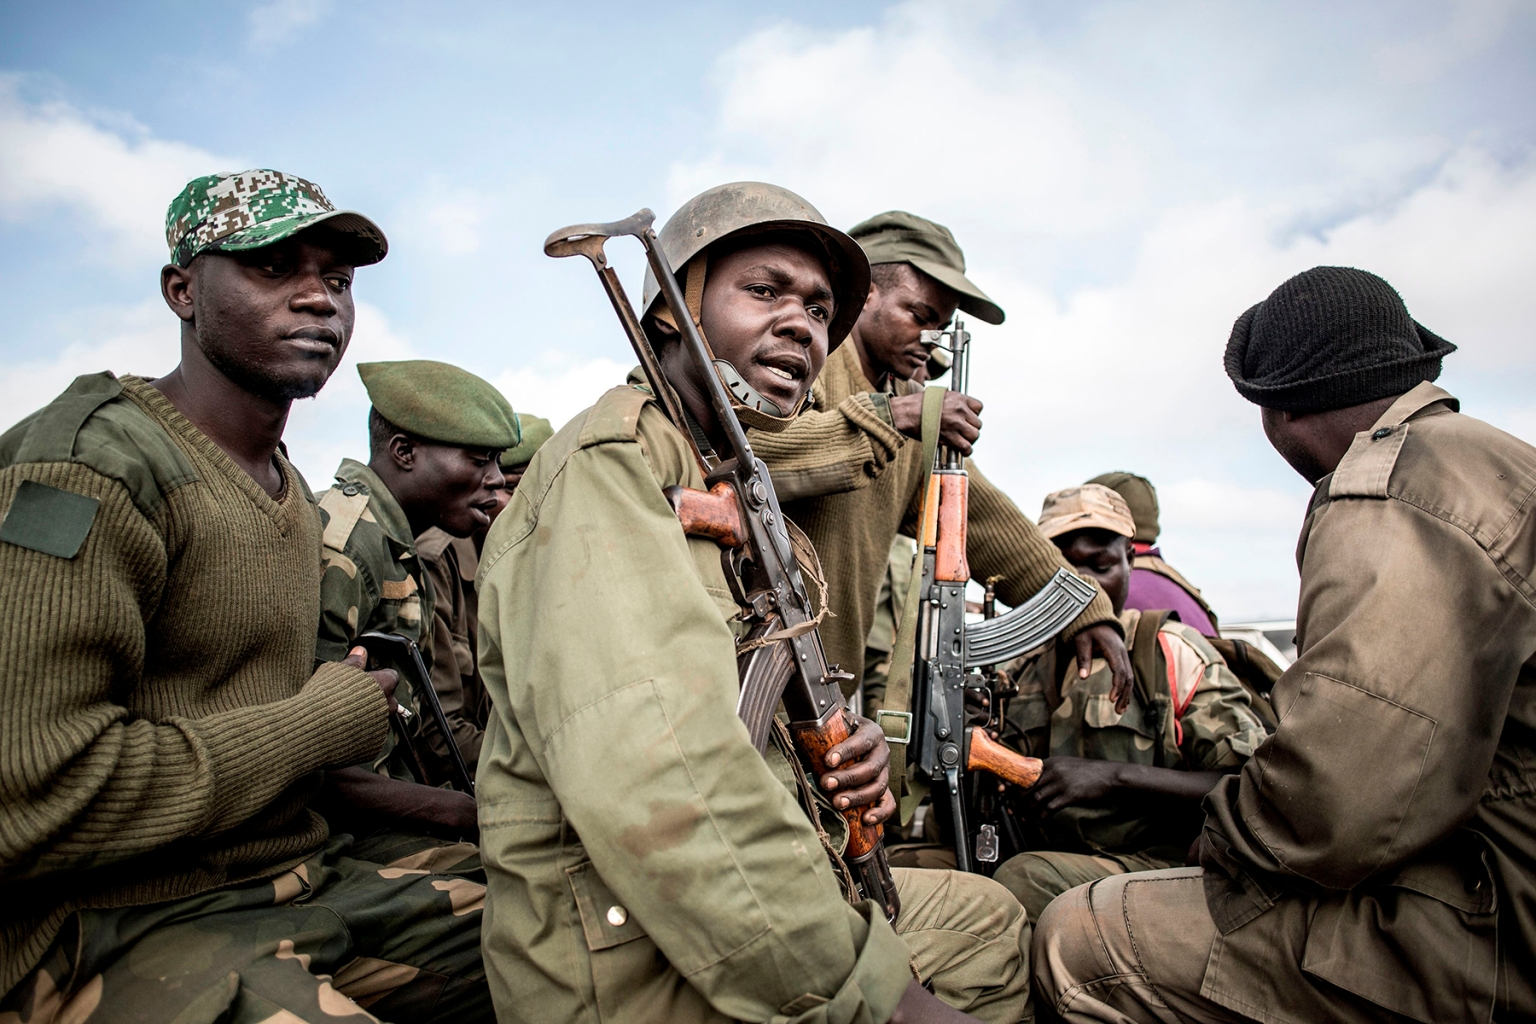 Soldiers of the armed forces of Democratic Republic of the Congo prepare to escort health workers attached to Ebola response programs in Butembo, north of Kivu, on May 18. JOHN WESSELS/AFP/Getty Images